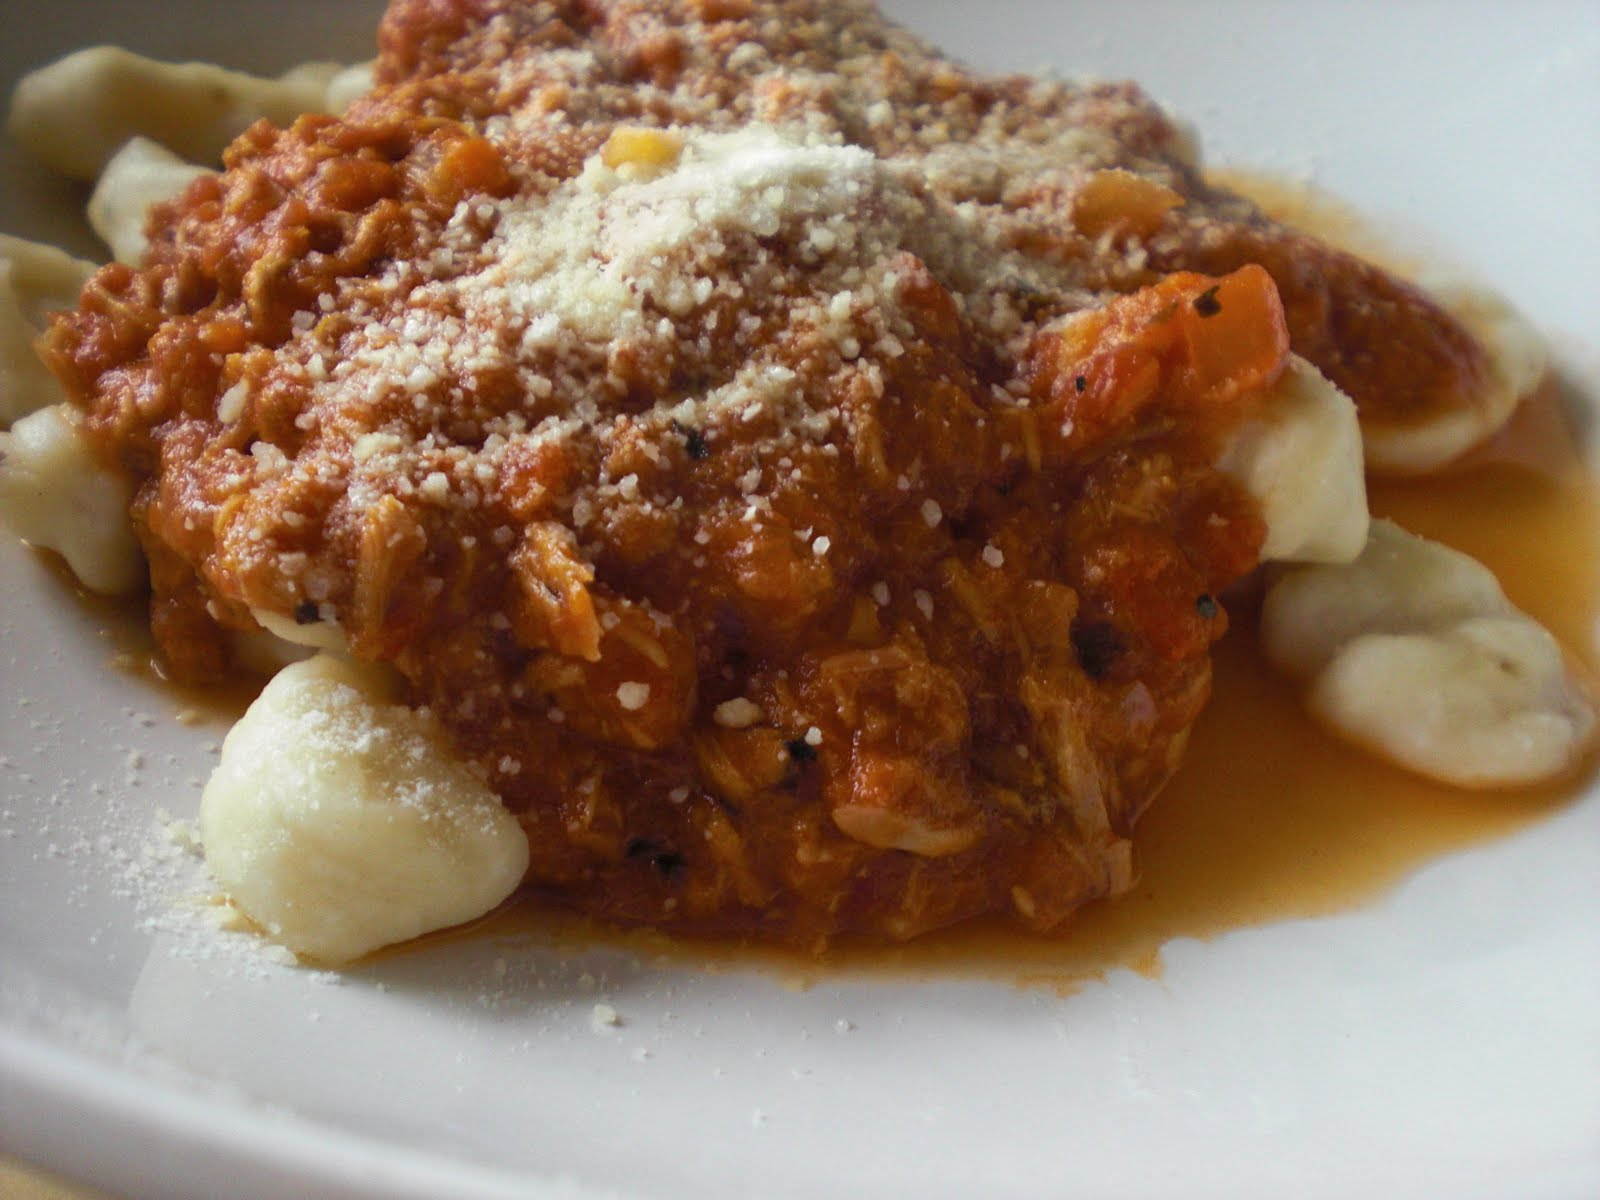 ... so we have ricotta gnocchi with a somewhat spicy tuna marinara sauce